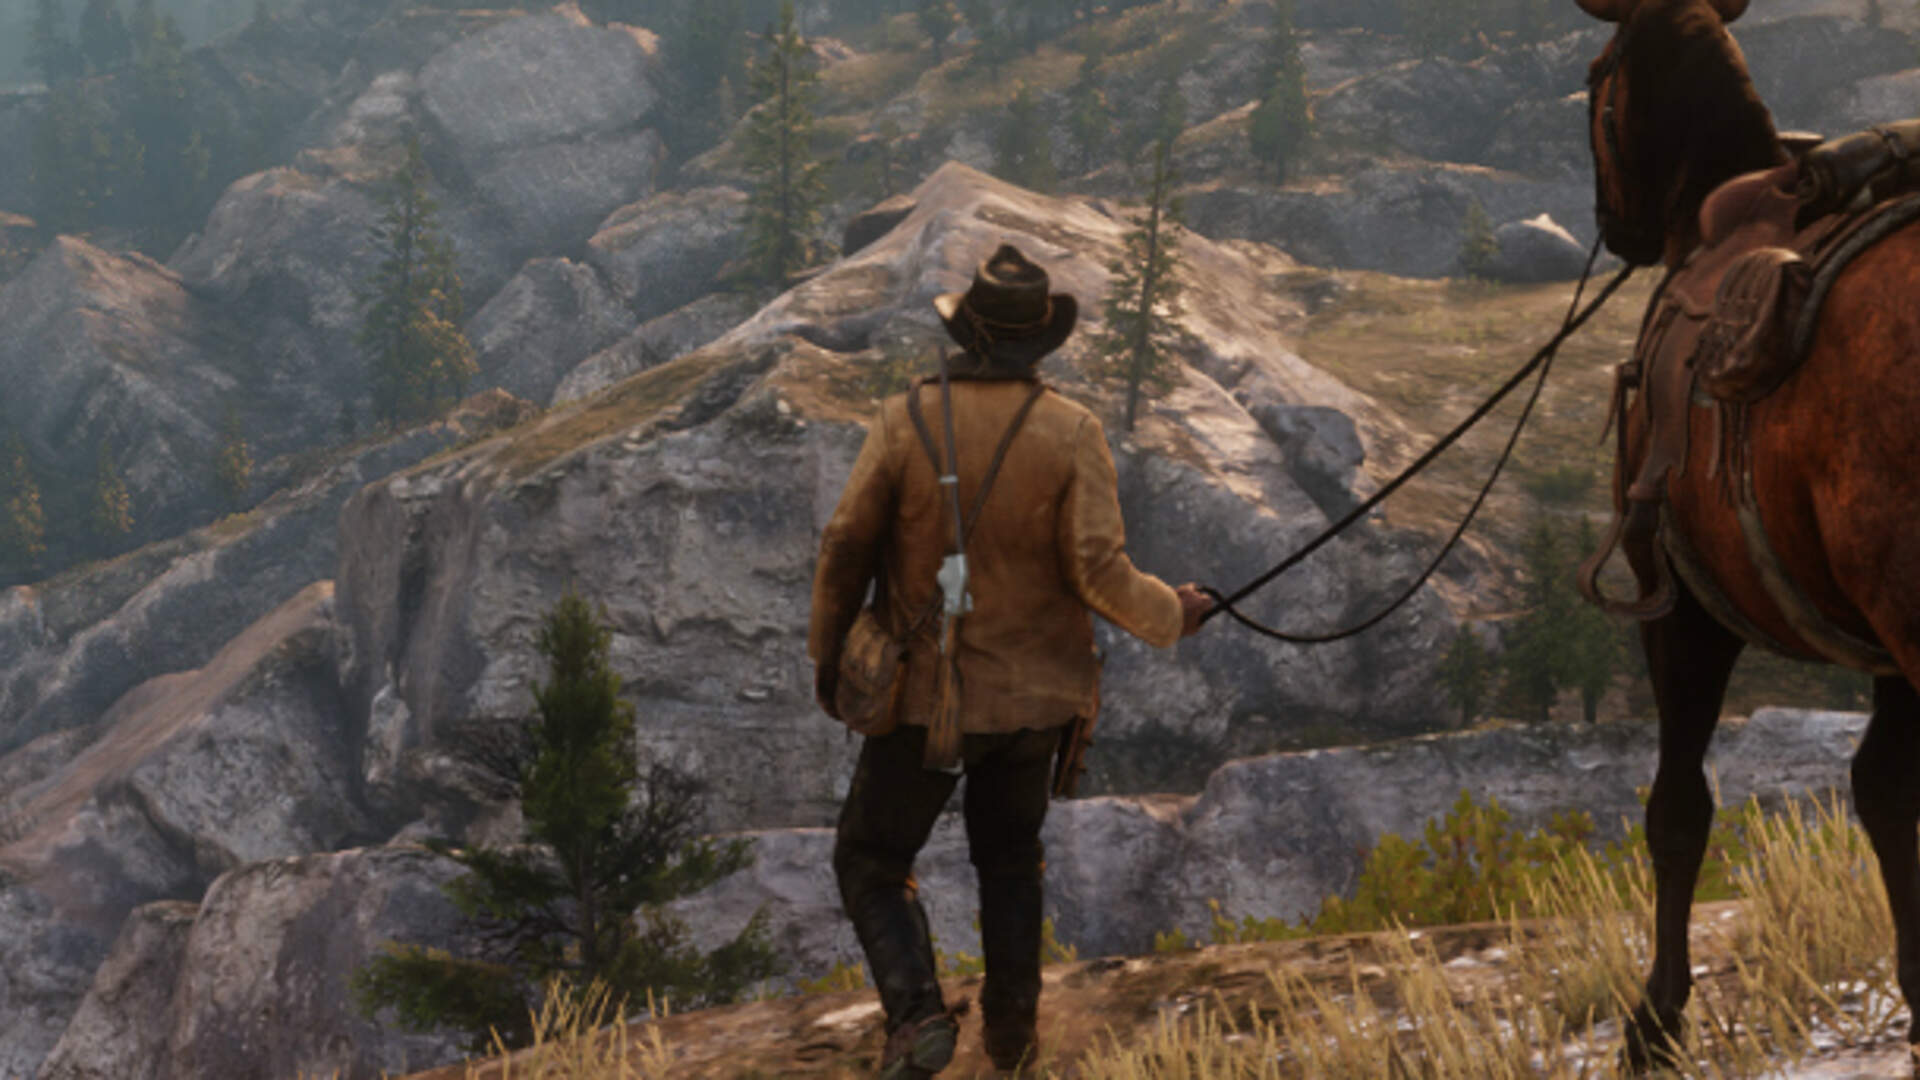 Turning off the HUD in Red Dead Redemption 2 Supposedly Makes NPCs Offer More Detailed Directions